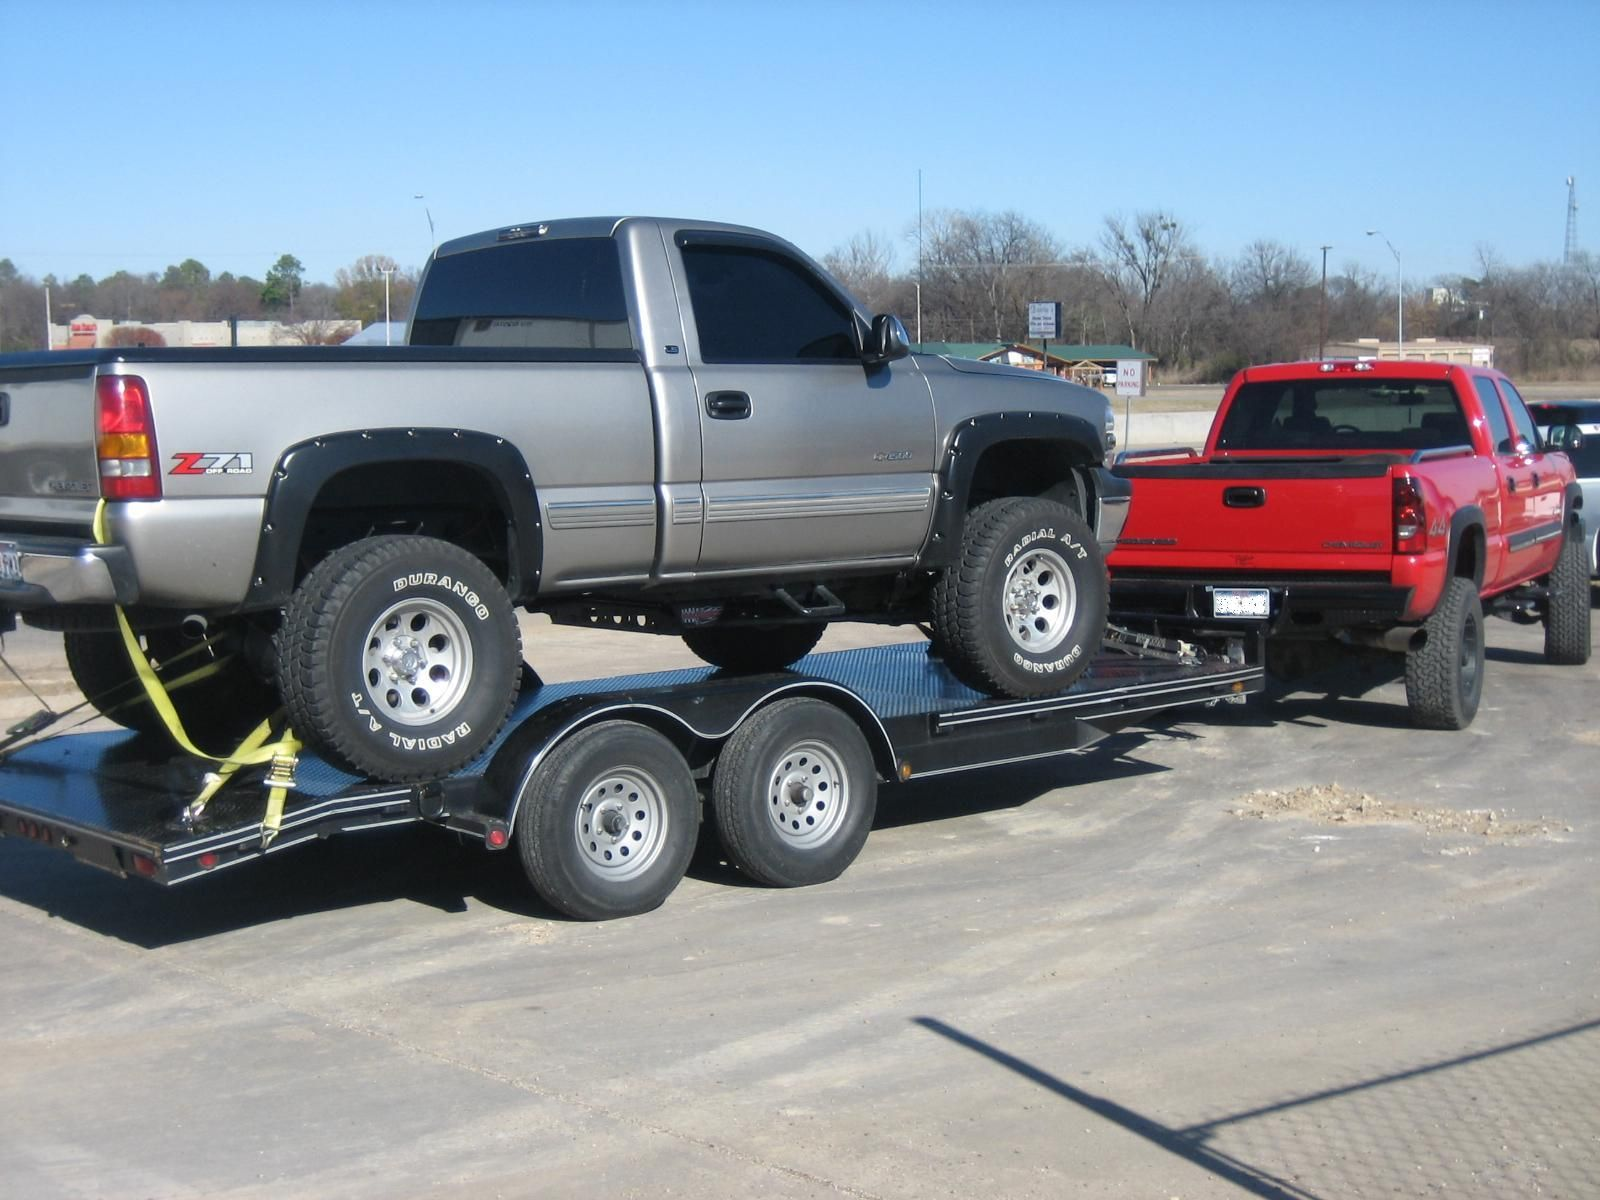 Silver grey lifted gmc truck being towed by a red gmc truck